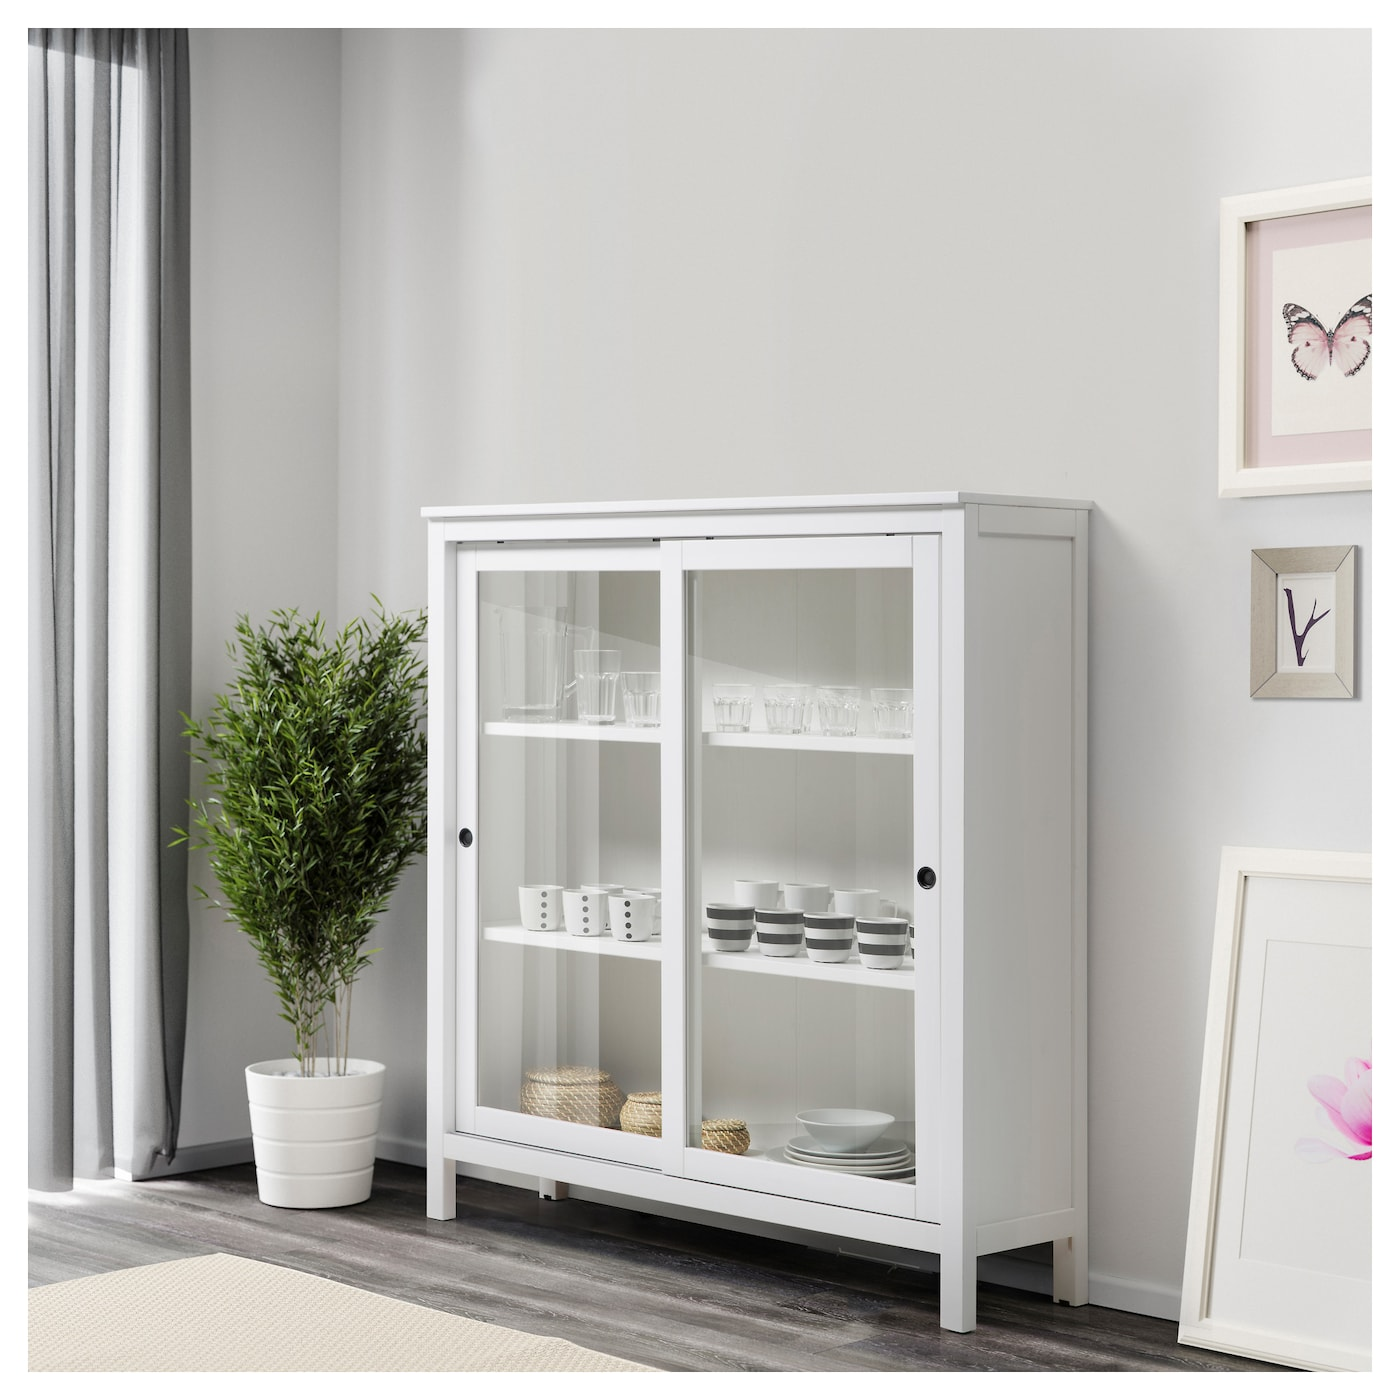 Hemnes glass door cabinet white stain 120x130 cm ikea - Ikea glass cabinets ...